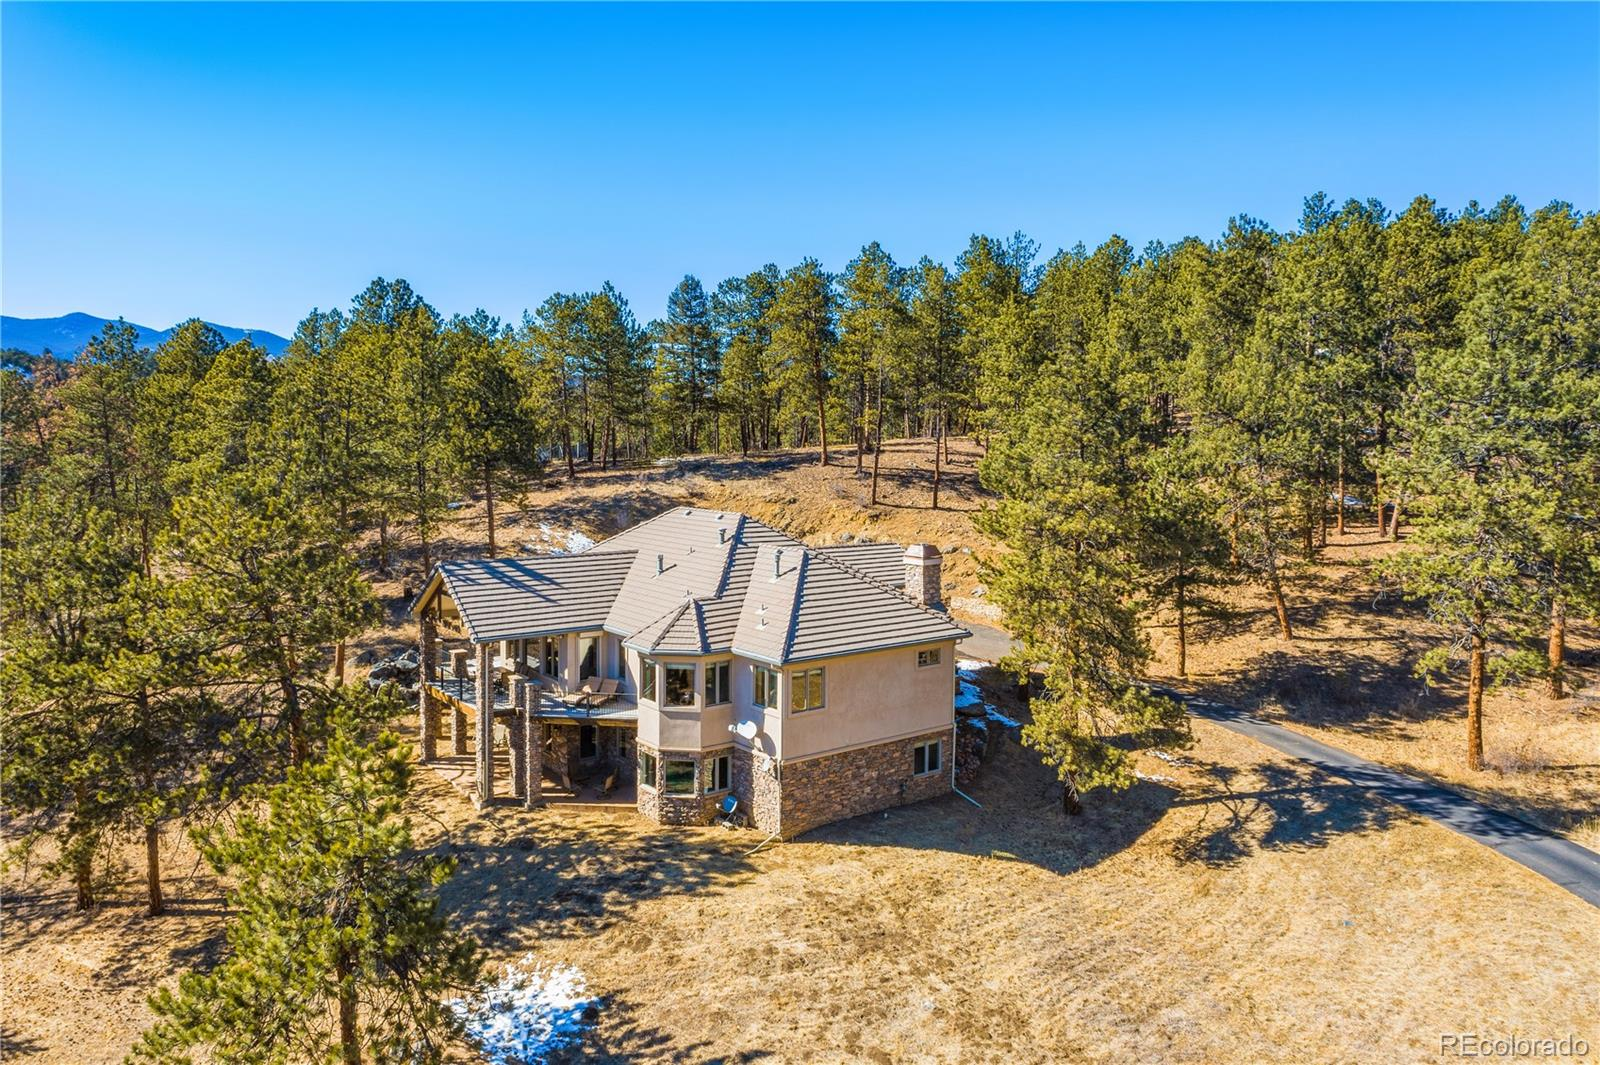 "Wow! Locations like this don't come around very often. Secluded on 15 wooded acres yet close to shopping, restaurants and trails! Unmatched location, 25 minutes to Downtown Denver and just 40 minutes to Loveland Ski Resort. Amazing top-notch Evergreen schools. The home has easy access year-round with a paved road and driveway that leads all the way to property right off US40. Custom Kinsey Griffin sprawling ranch with a massive deck, hand-troweled walls, vaulted ceilings and oversized windows maximizing the home's setting and surroundings. Private main floor master boasts its own rear deck access, 10ft ceilings, oversized walk-in closet, 5-piece spa bathroom w/ dual-sided fireplace and jacuzzi tub. The wide-open floorplan combines an oversized vaulted family room, a gourmet kitchen with 42"" custom cabinets, granite countertops, Thermador 6-burner gas range, Sub Zero built-in fridge, and large walk-in pantry. Main floor office with its own private fireplace. The open staircase leads to a functional walkout basement with 3 private bedrooms all with walk-in closets, 2 of the rooms share a Jack & Jill and the 3rd bedroom ensuite, last but not least an open 1/2 bath for those you entertain. The large home theater and nearby wetbar can be a fantastic way to bring everyone together! The basement also has a secondary stairway! Outside is a playground on the property with getaways including a trampoline, an area for a zip line."